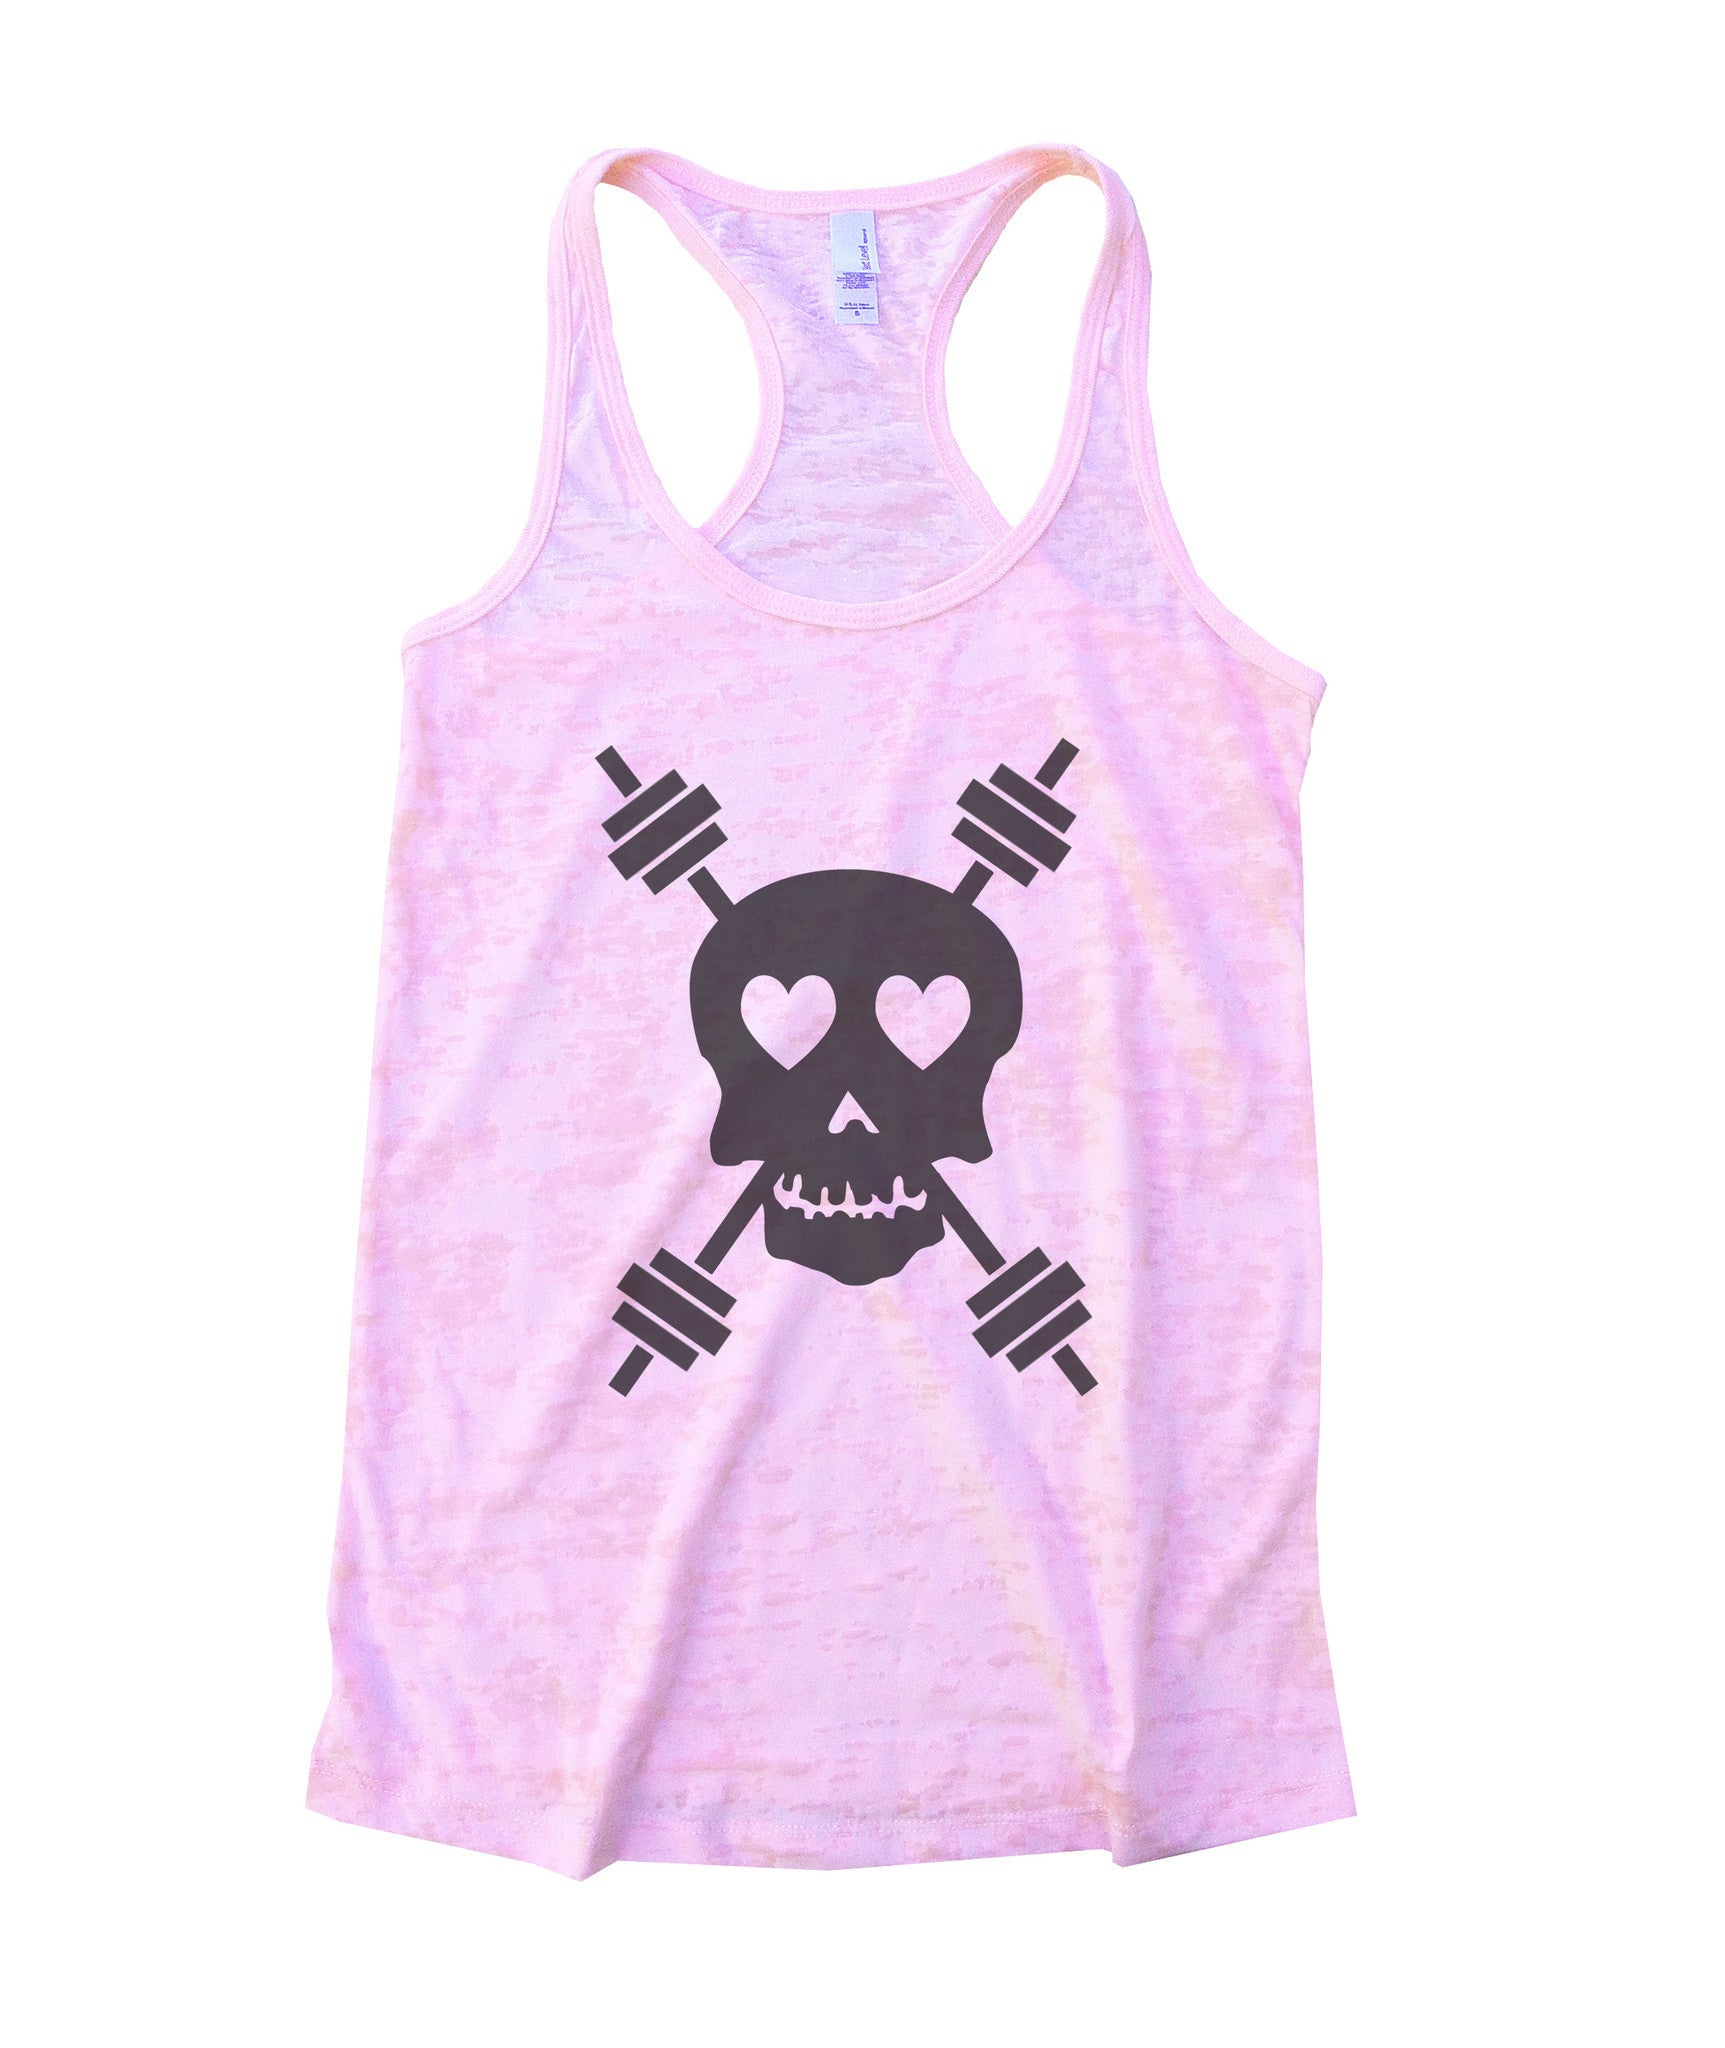 Skull And Weight Bars Burnout Tank Top By BurnoutTankTops.com - 653 - Funny Shirts Tank Tops Burnouts and Triblends  - 2